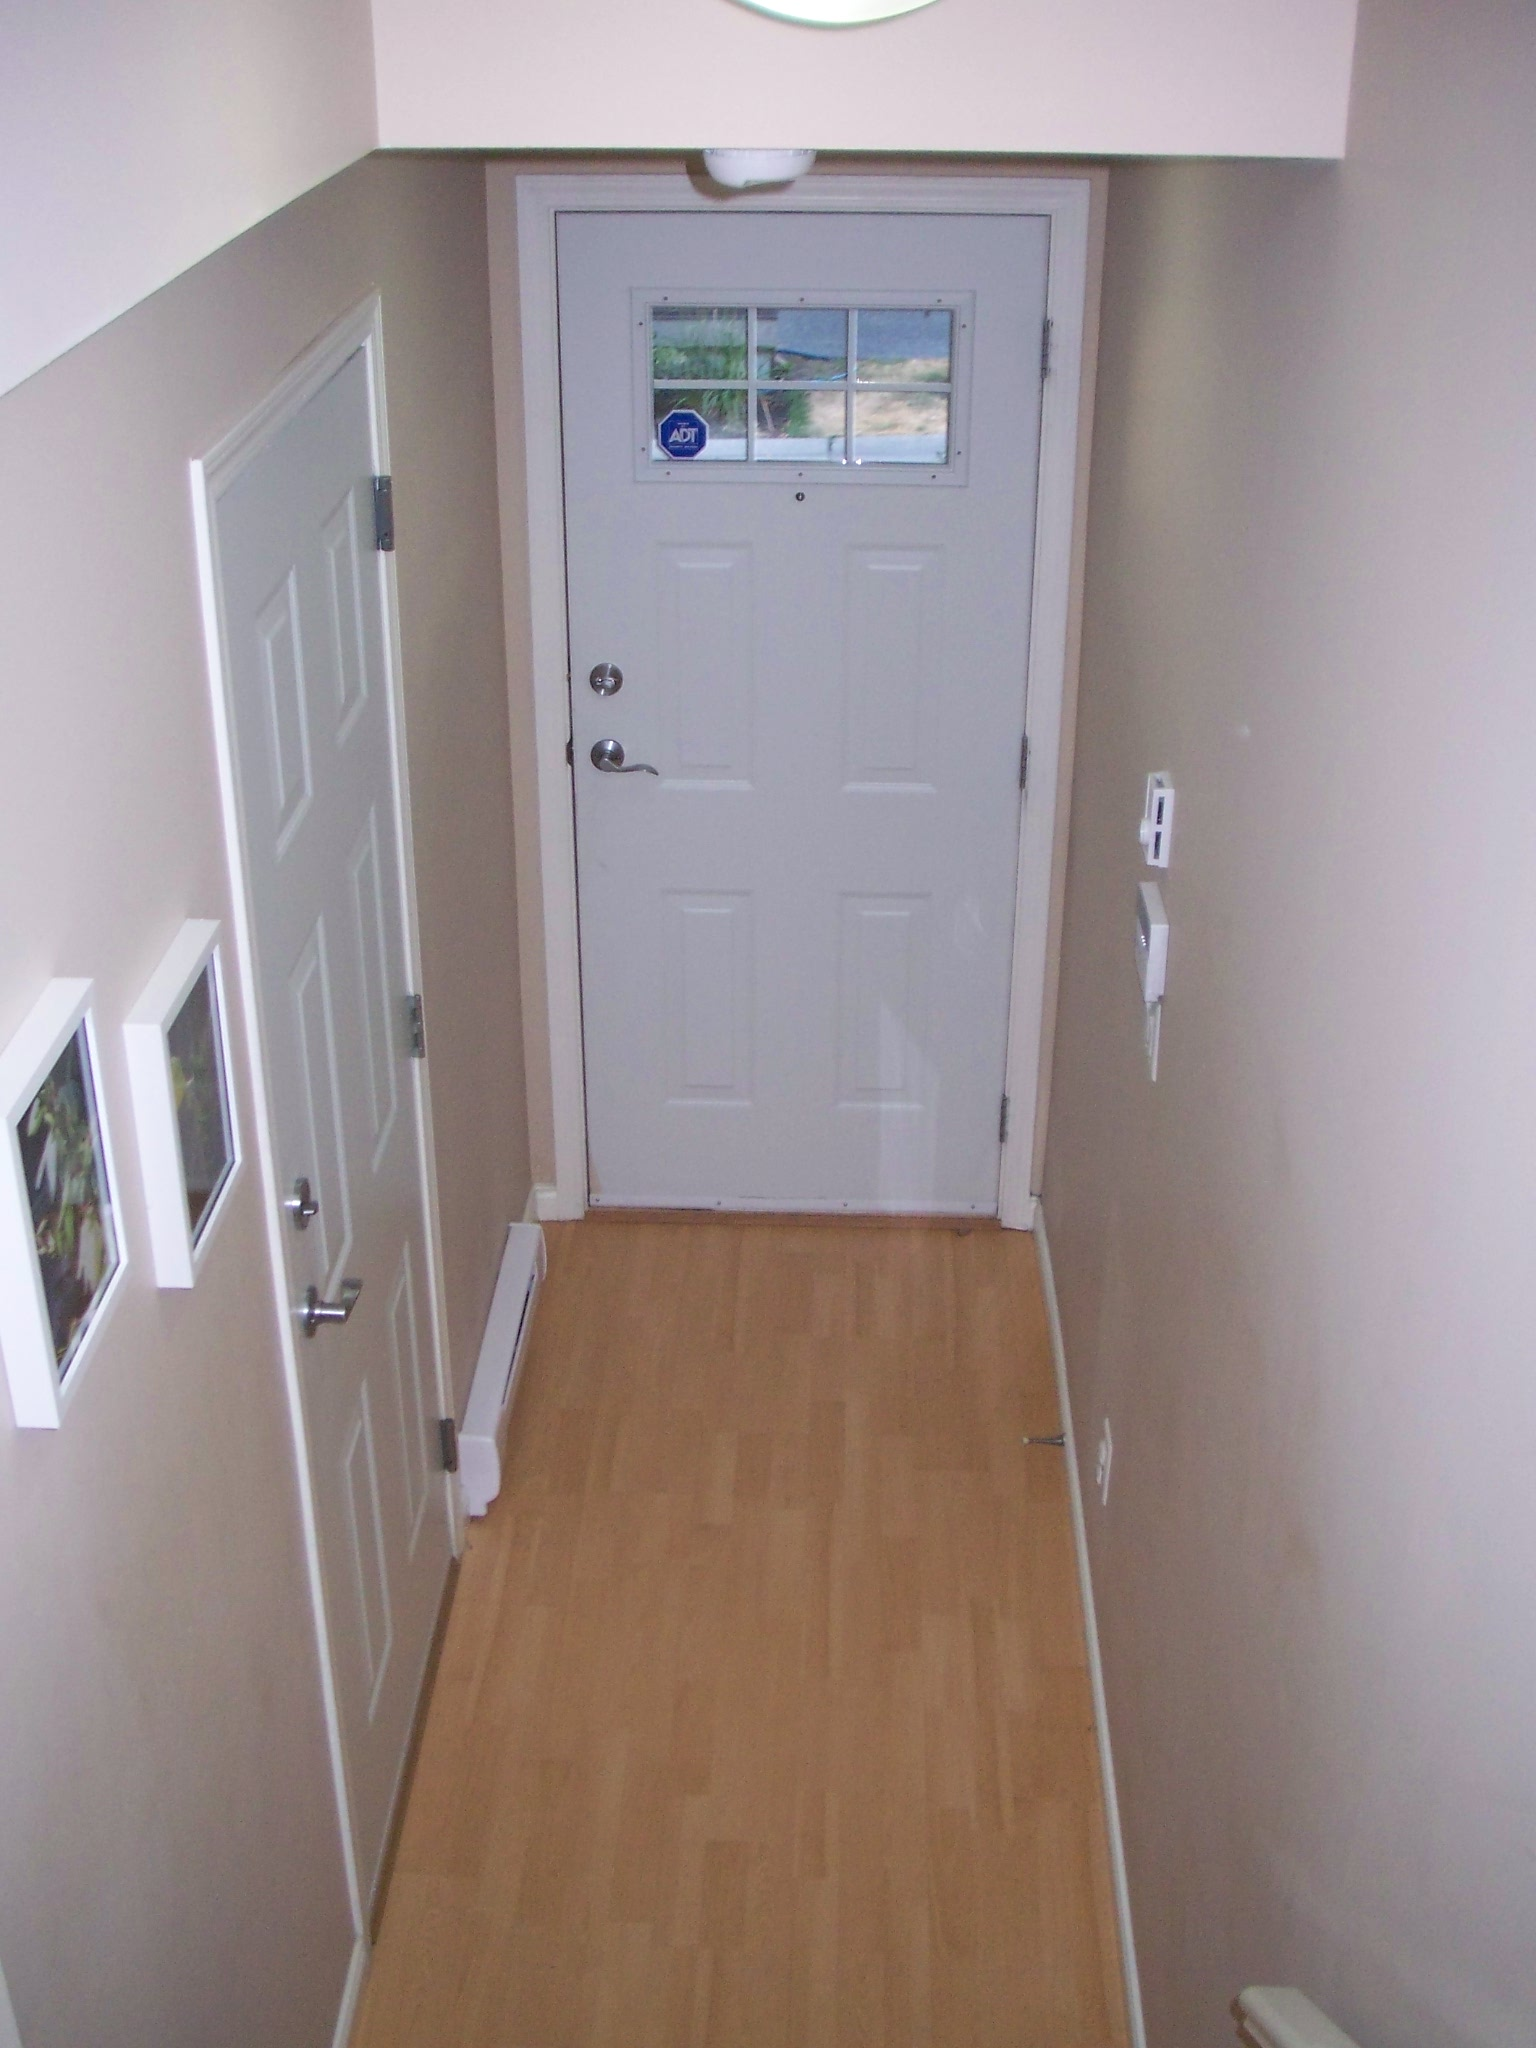 My very drab and uninteresting entryway. No after picture for you here. This is how it is for now.